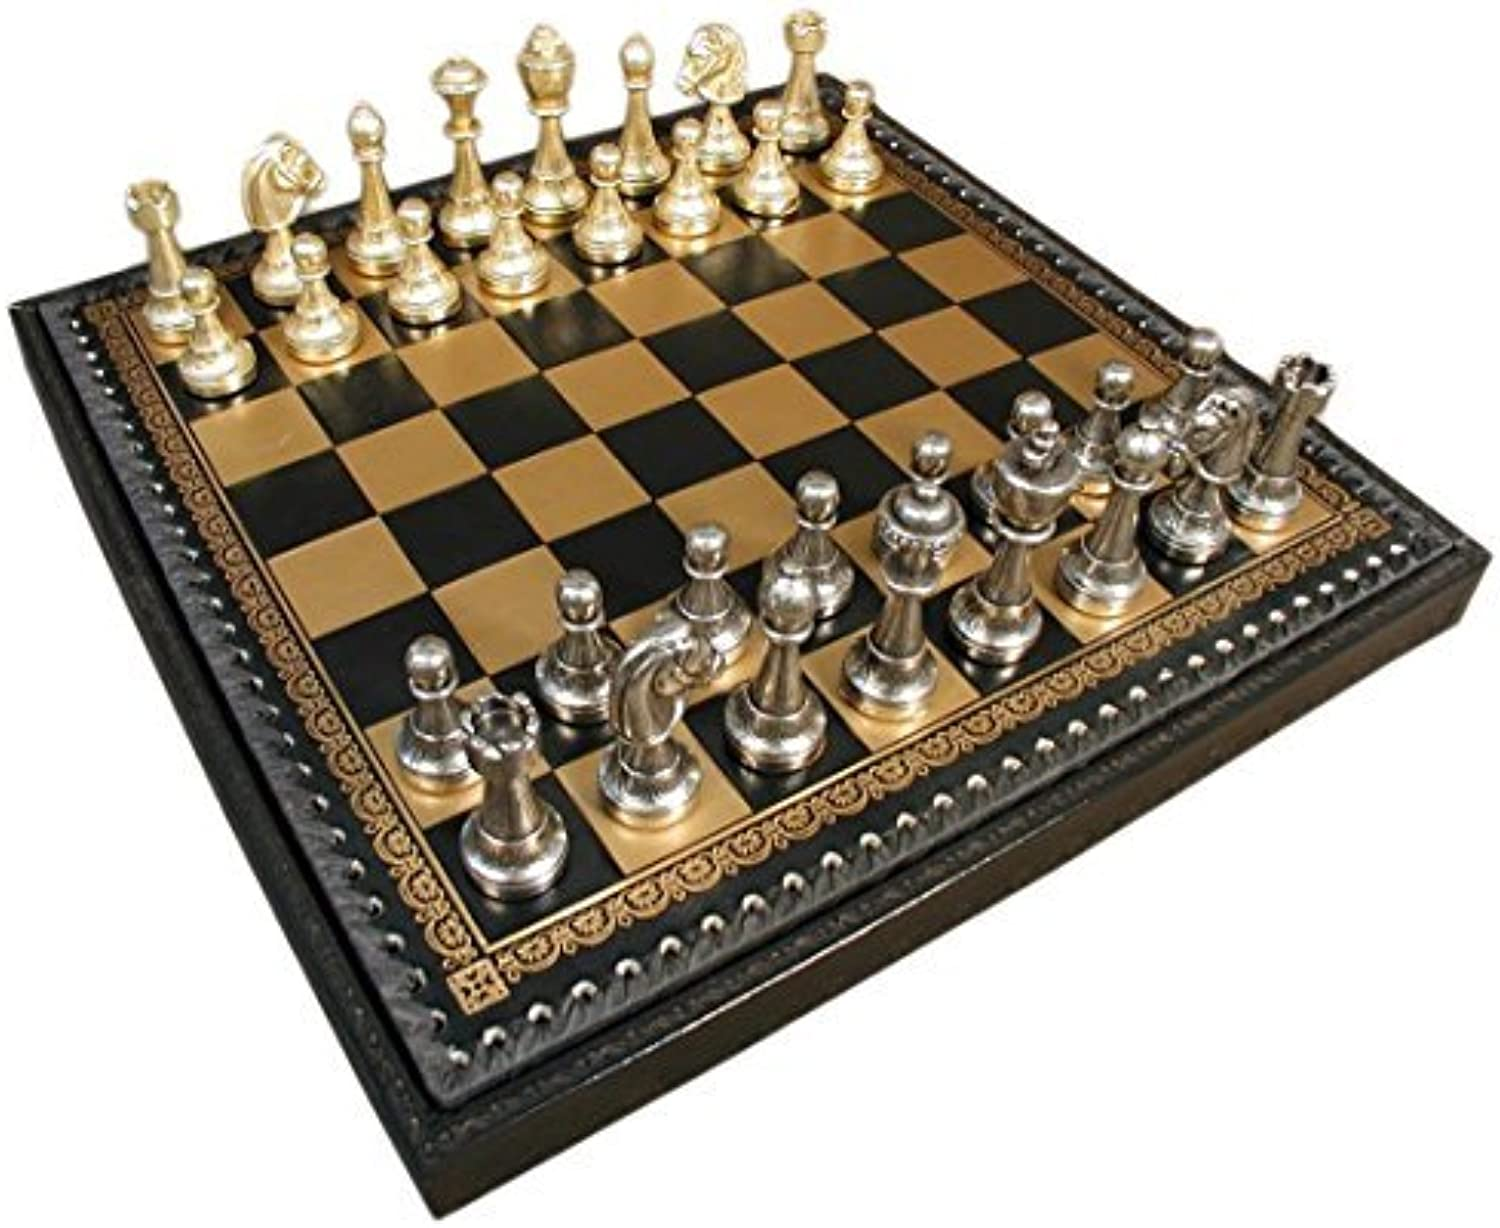 Staunton Metal on Leather Chest Chess Set by Italfama